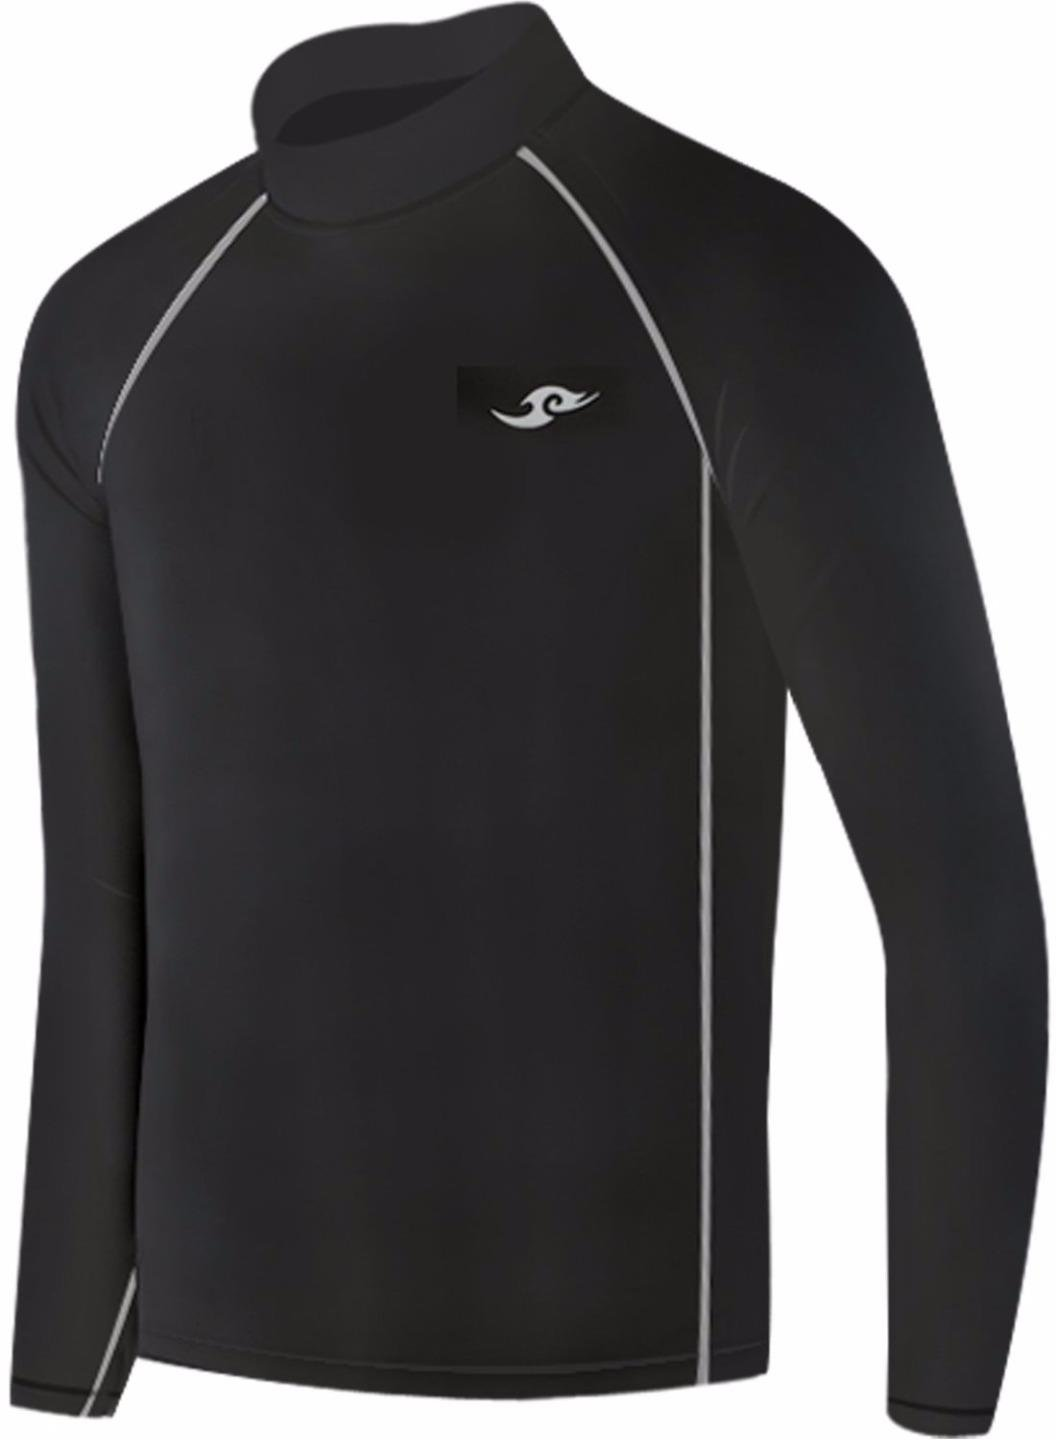 New Boys & Girls Youth 084 Black Compression Skin Tight Baselayer Shirt